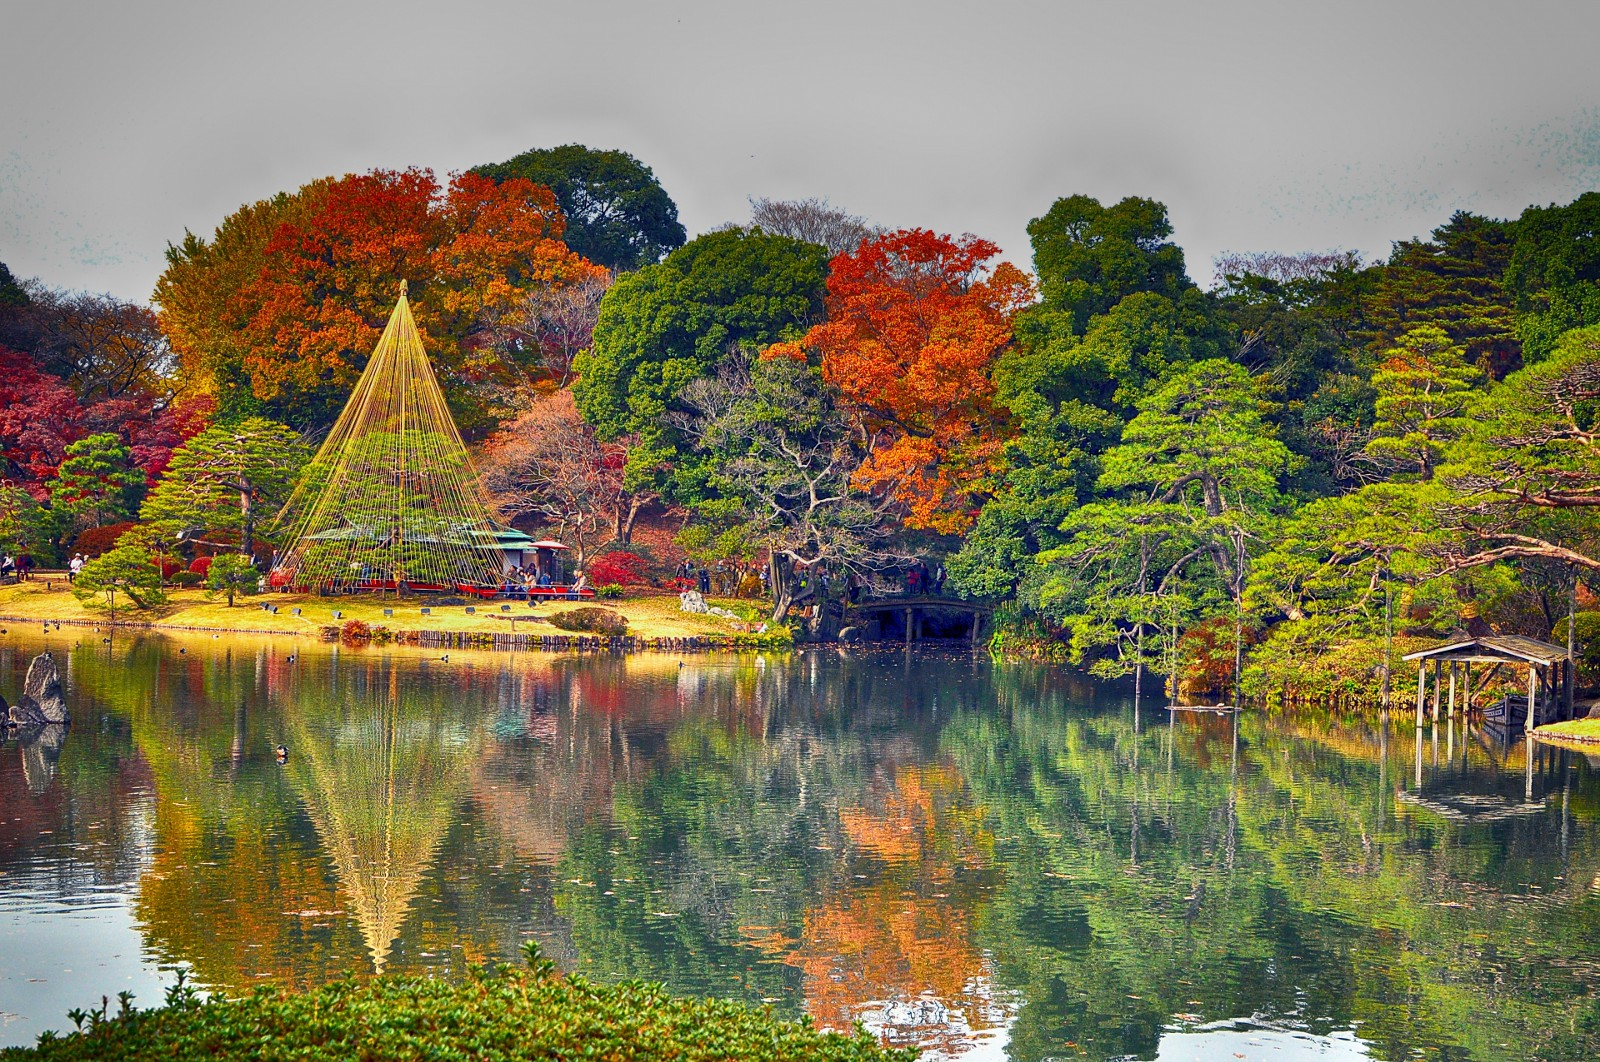 Picturesque Japanese garden: Rikugien Garden